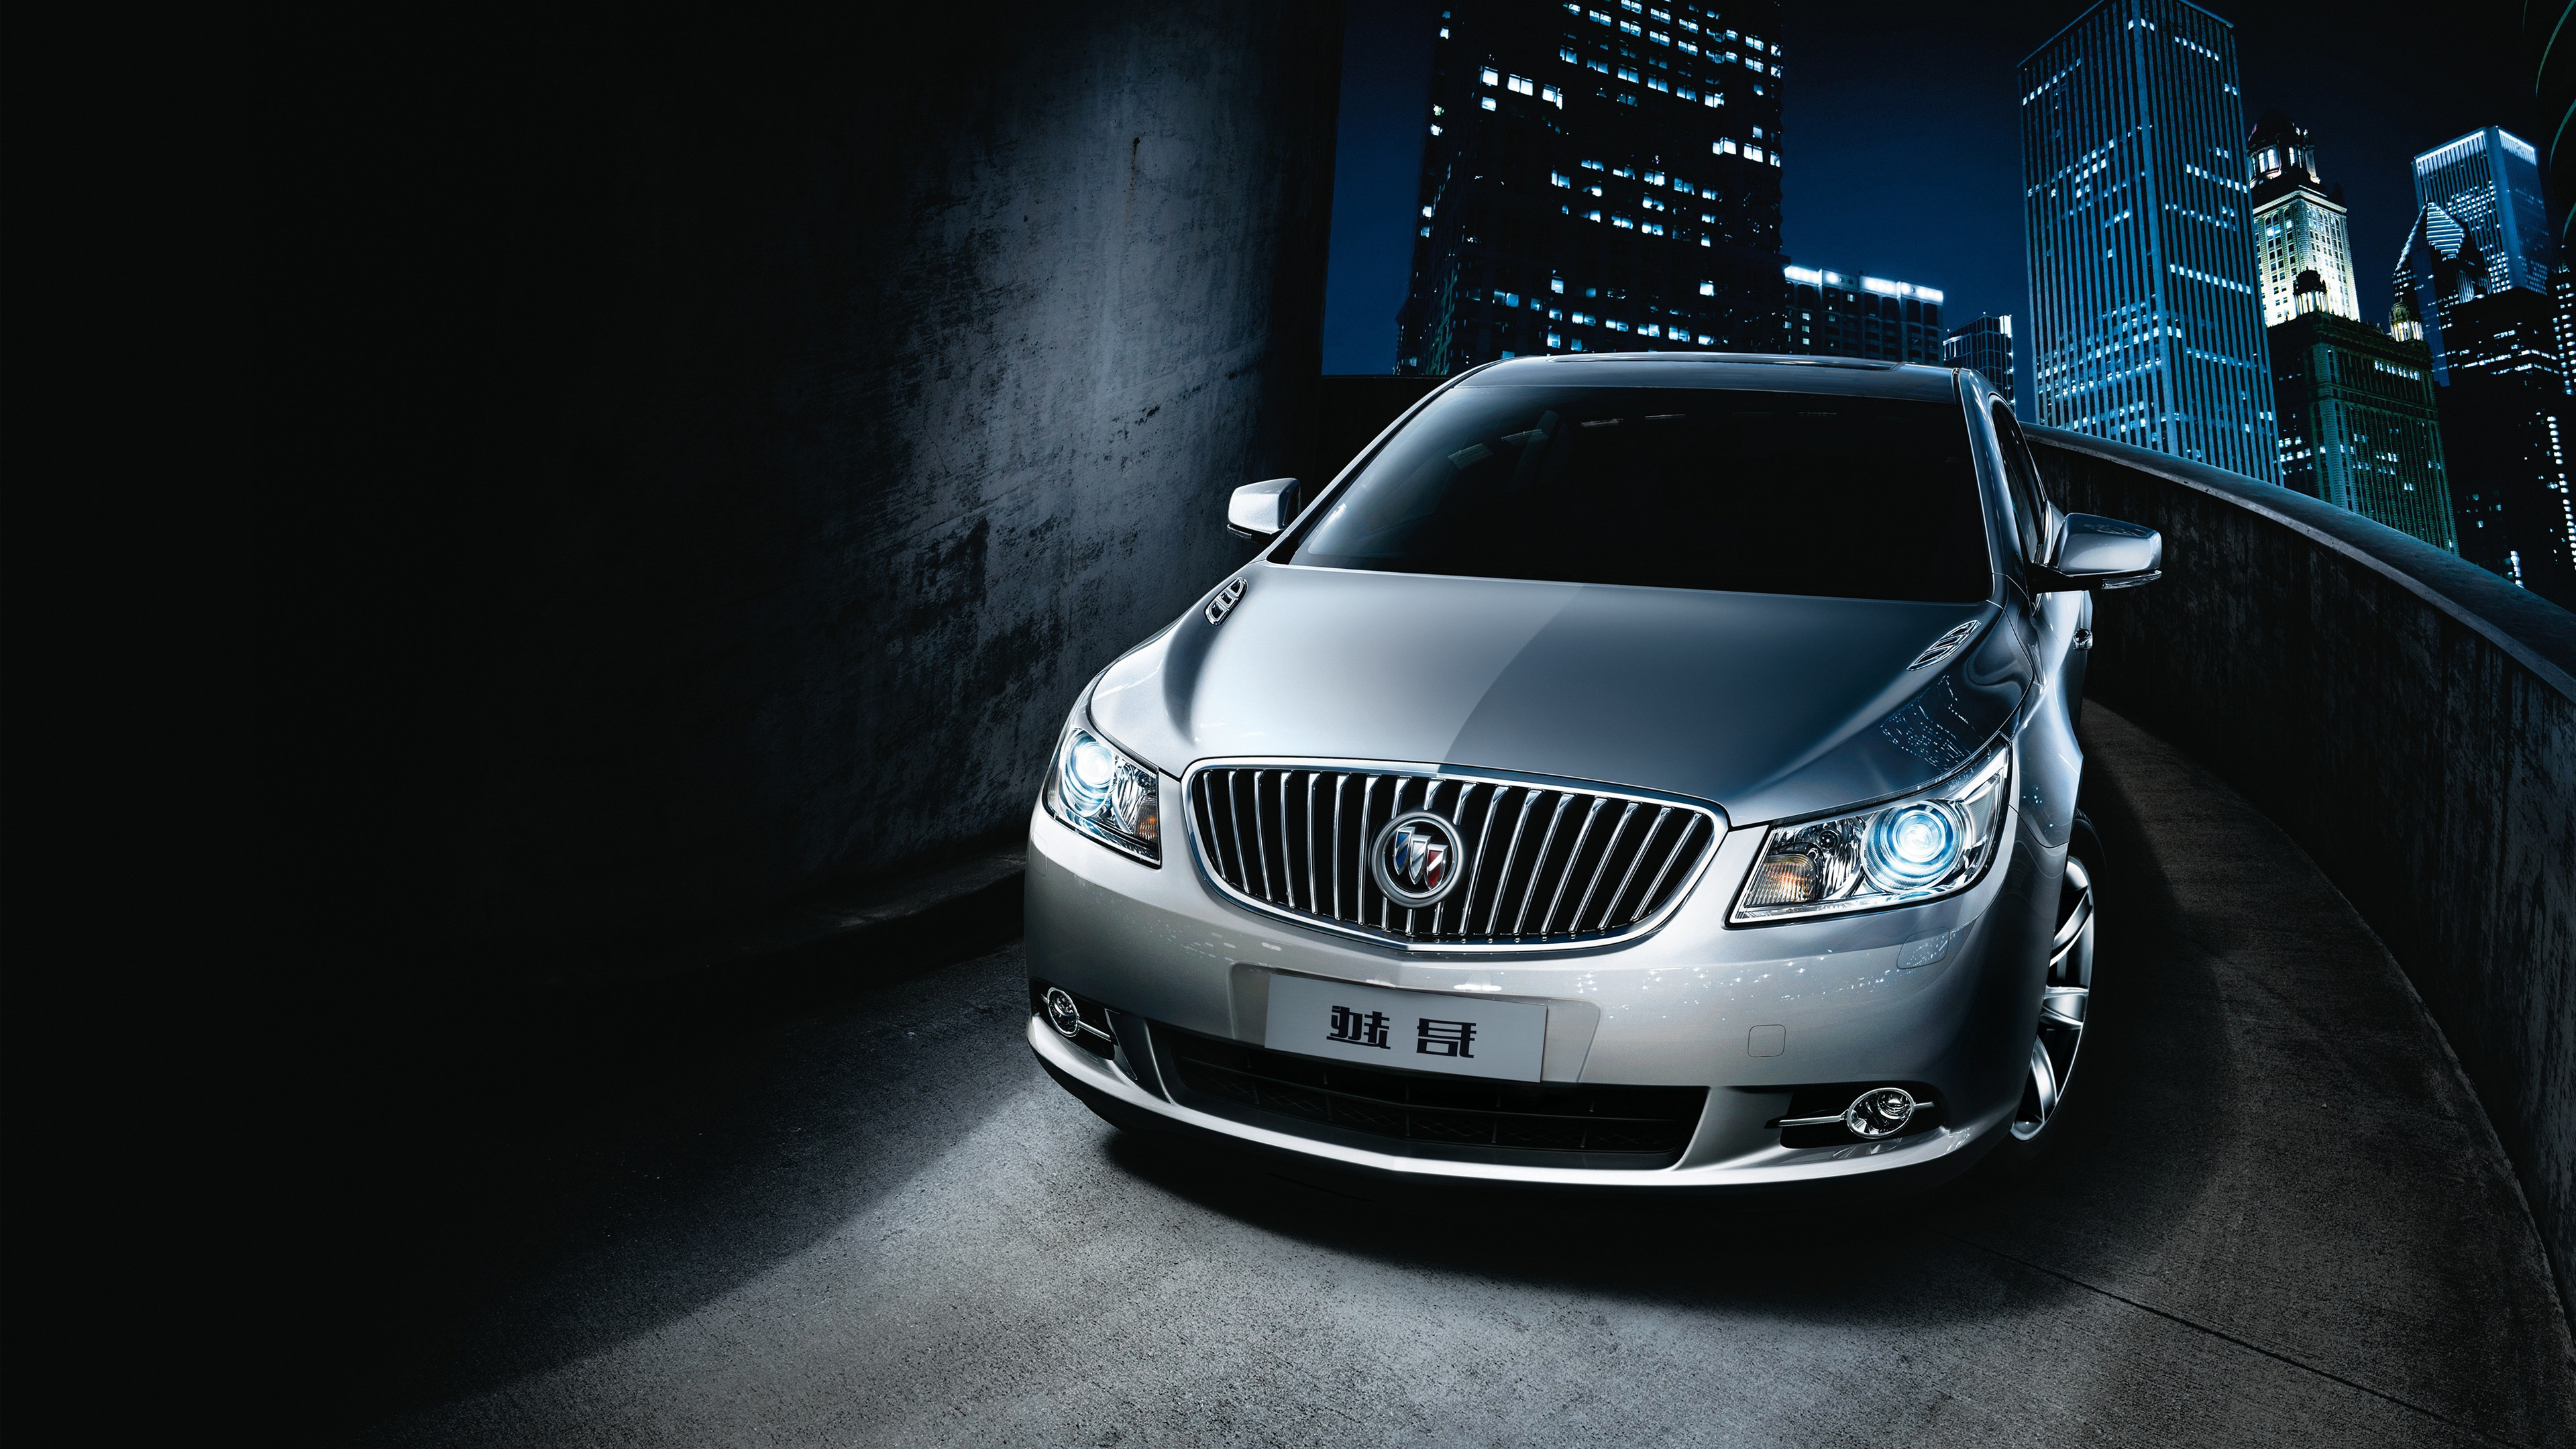 Res: 3840x2160, Buick LaCrosse Wallpaper 12 - 3840 X 2160